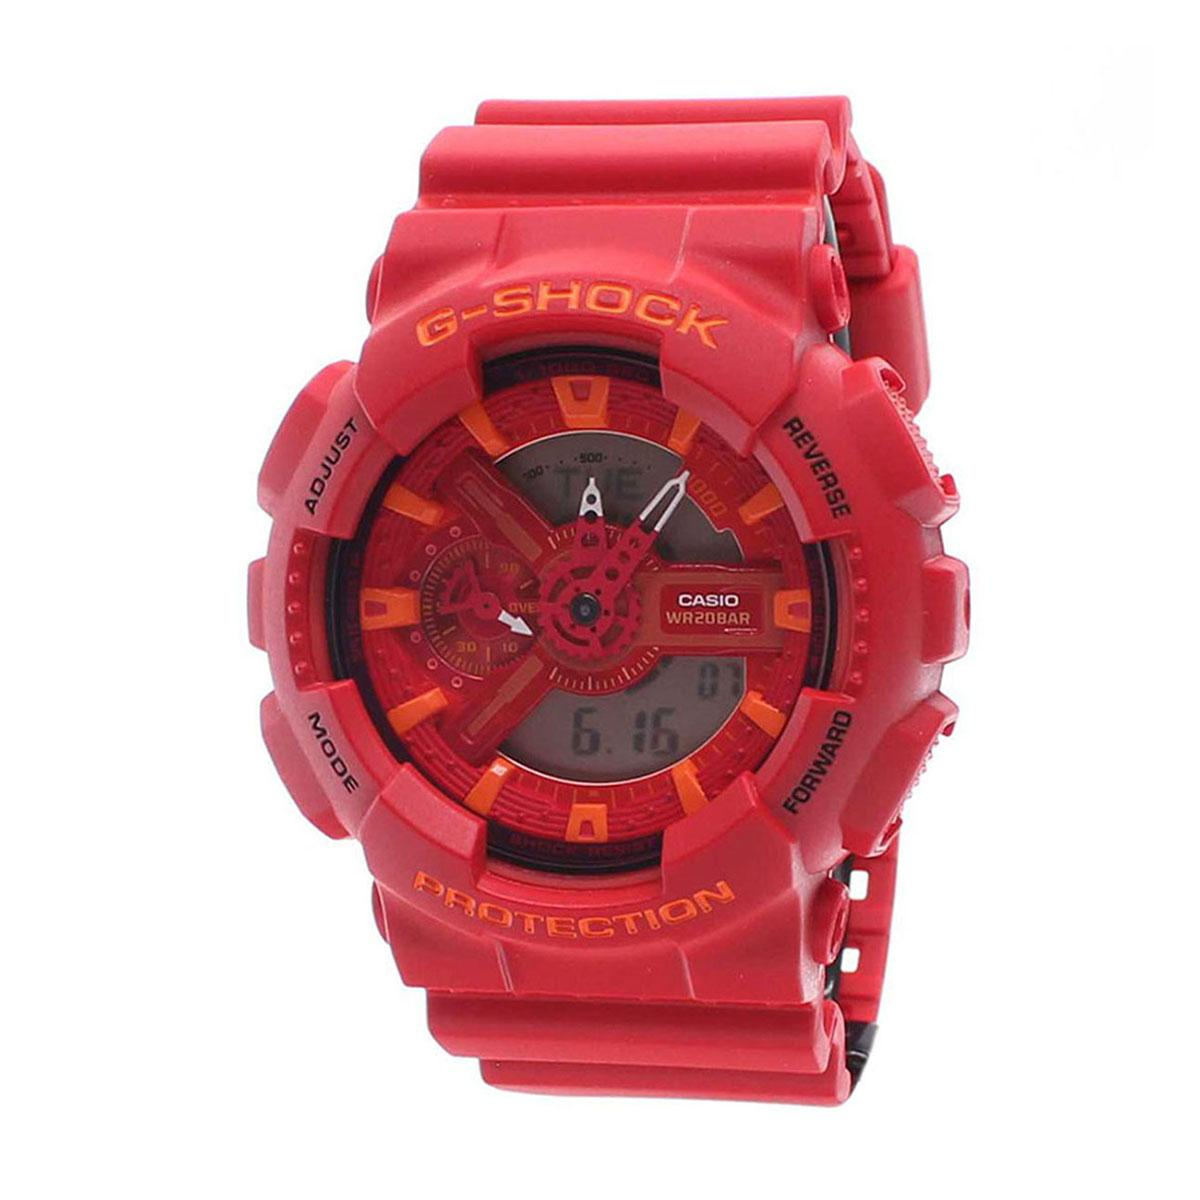 Lowest Price Casio Watch G Shock Red Resin Case Resin Strap Mens Ga 110Ac 4A